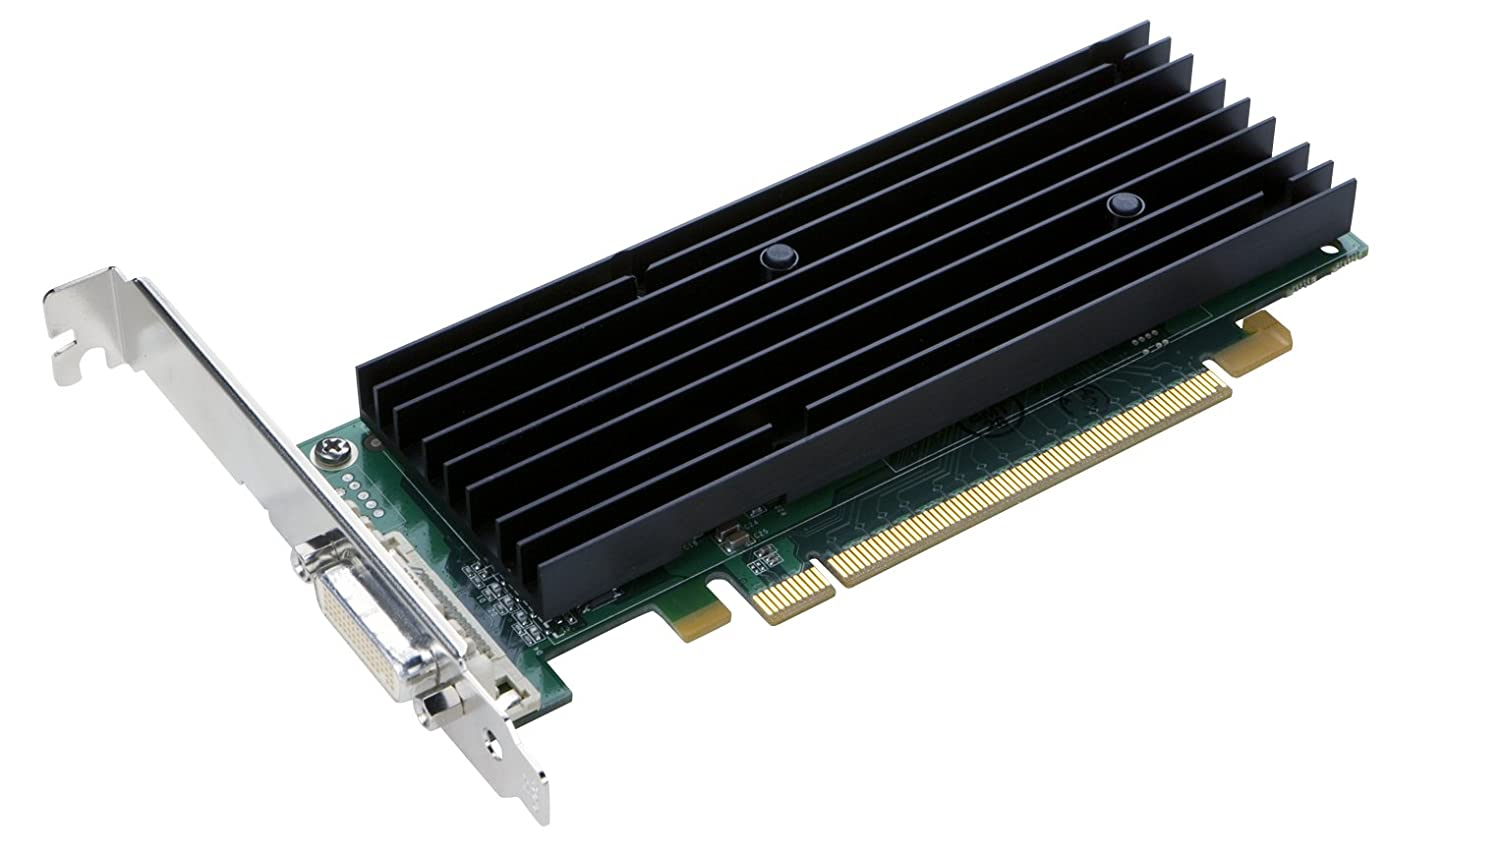 Nvidia Quadro Nvs 290 By Pny 256mb Ddr2 Pci Express X16 11 Pounds Of Scrap Old Circuit Boards Gigabyte Zotac Msi Dms 59 To Dual Dvi I Sl Or Vga Profesional Business Graphics Board